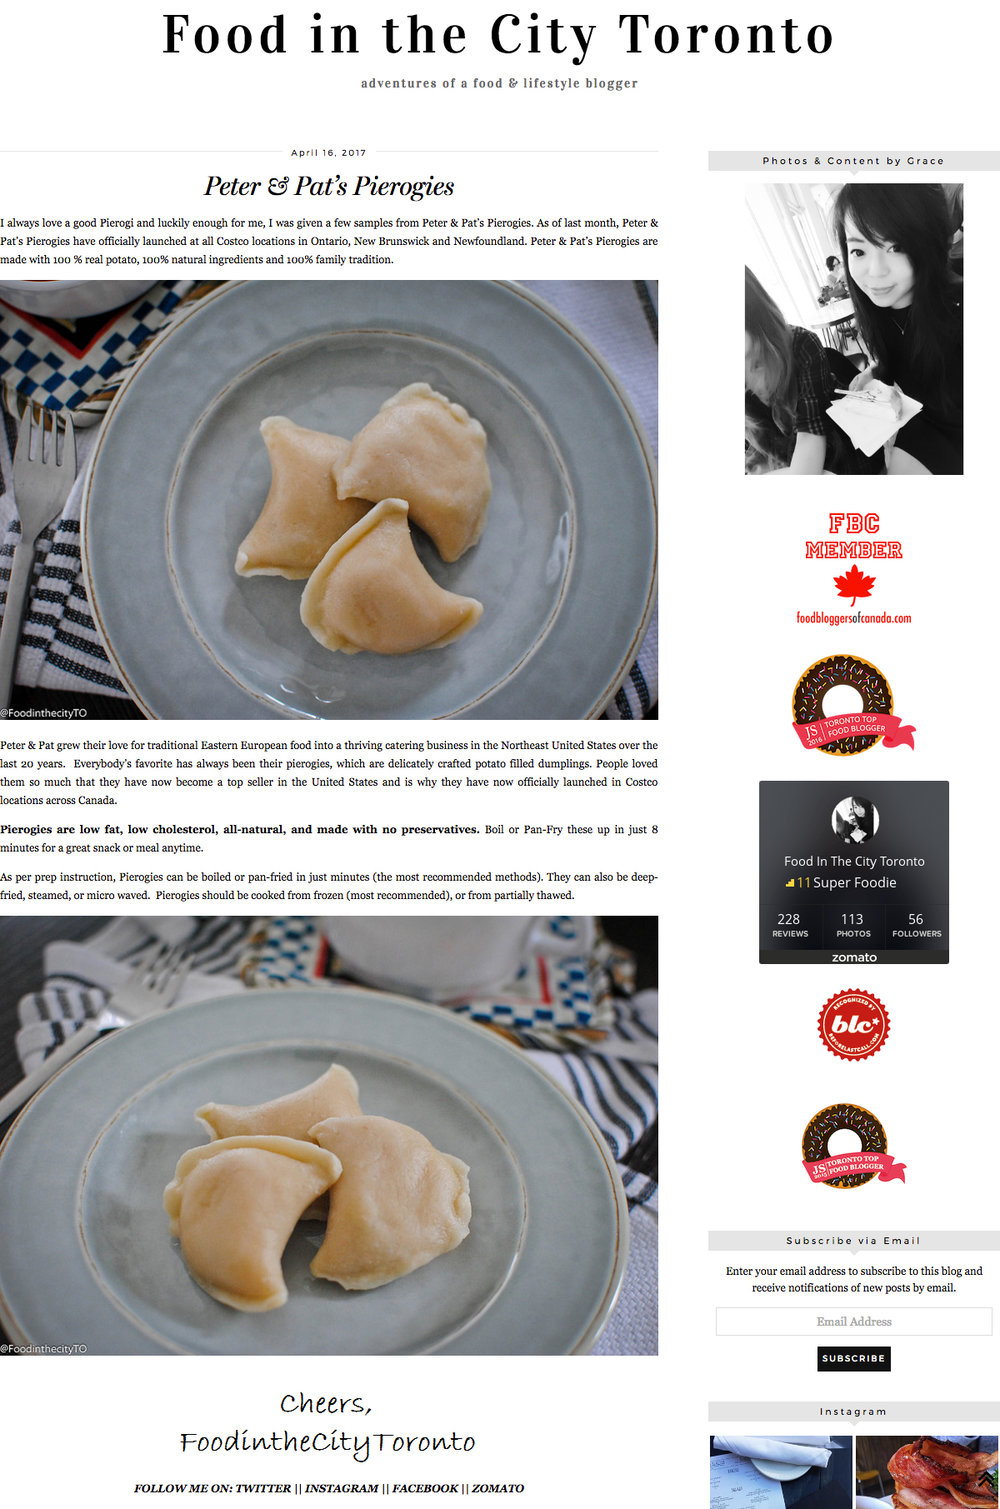 Peter & Pat's Pierogies featured in Food In The City Toronto